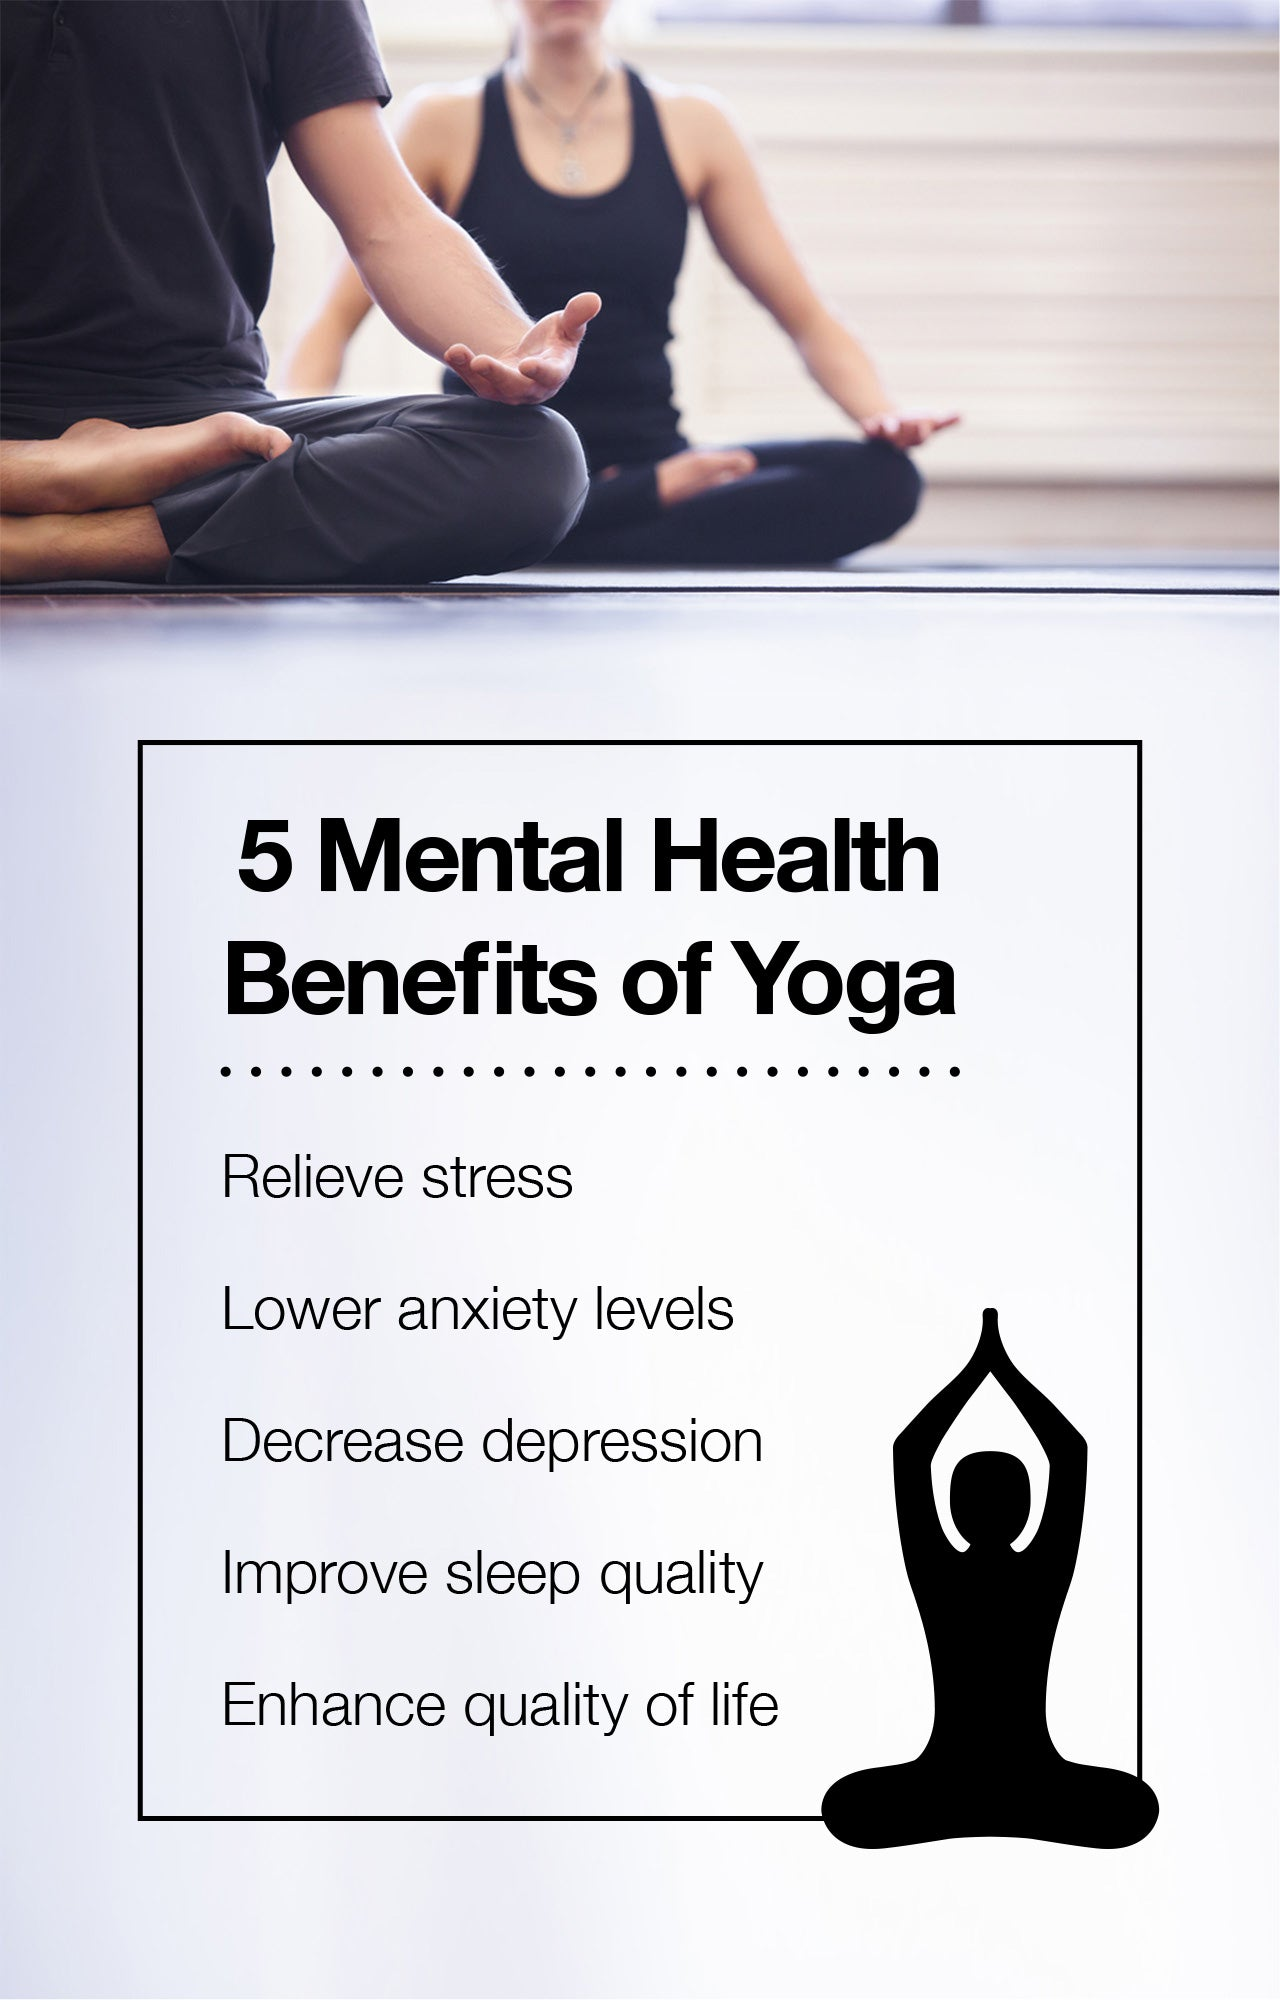 5 Mental Health Benefits of Yoga